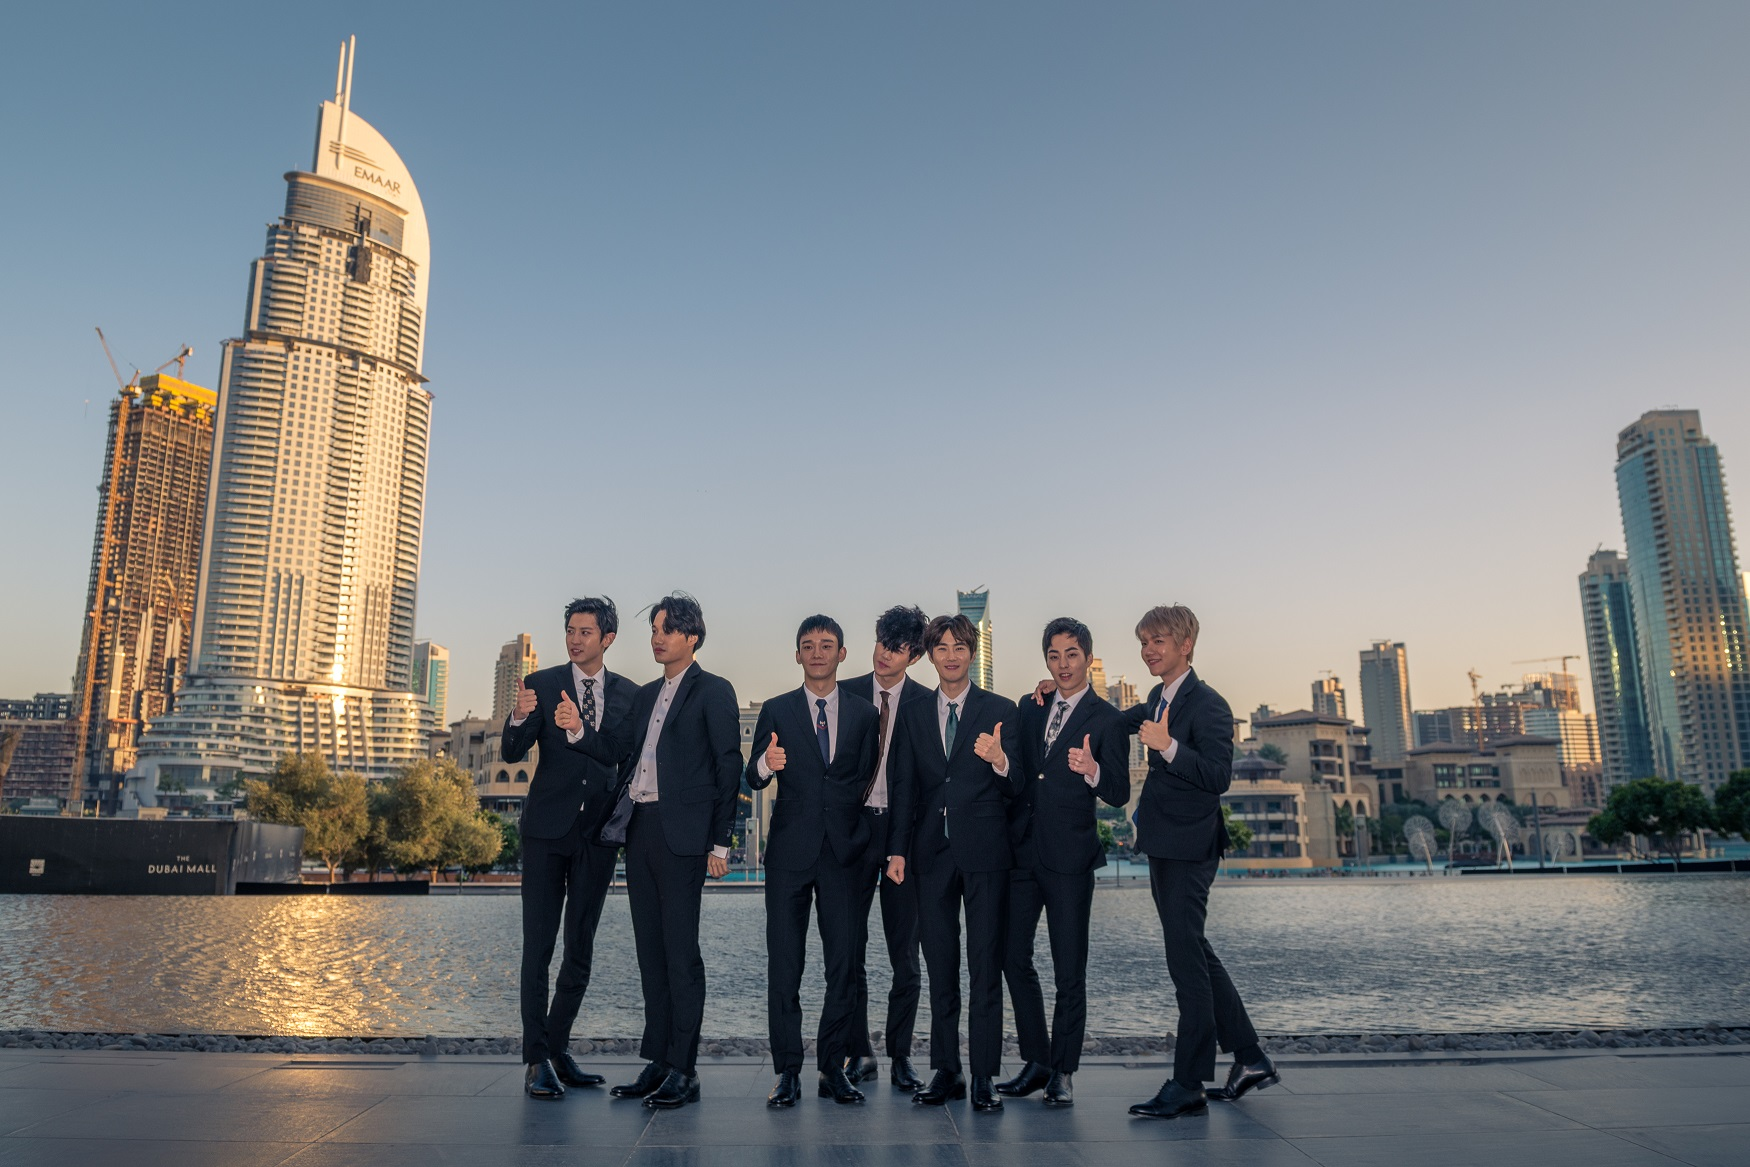 K-Pop supergroup Exo in Downtown Dubai